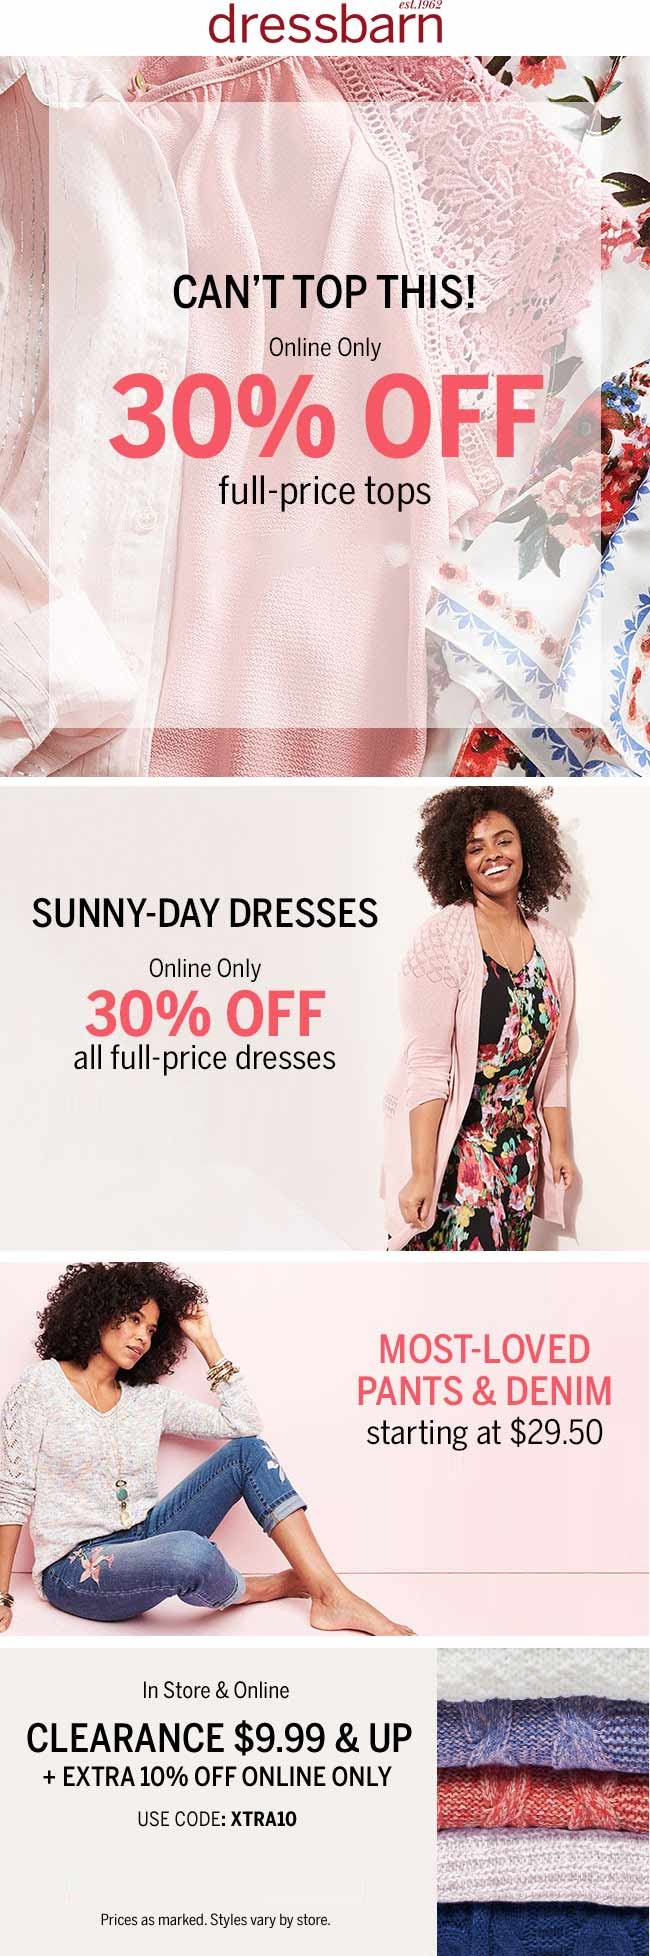 Dressbarn Coupon June 2019 30% off tops online at Dressbarn, no code needed